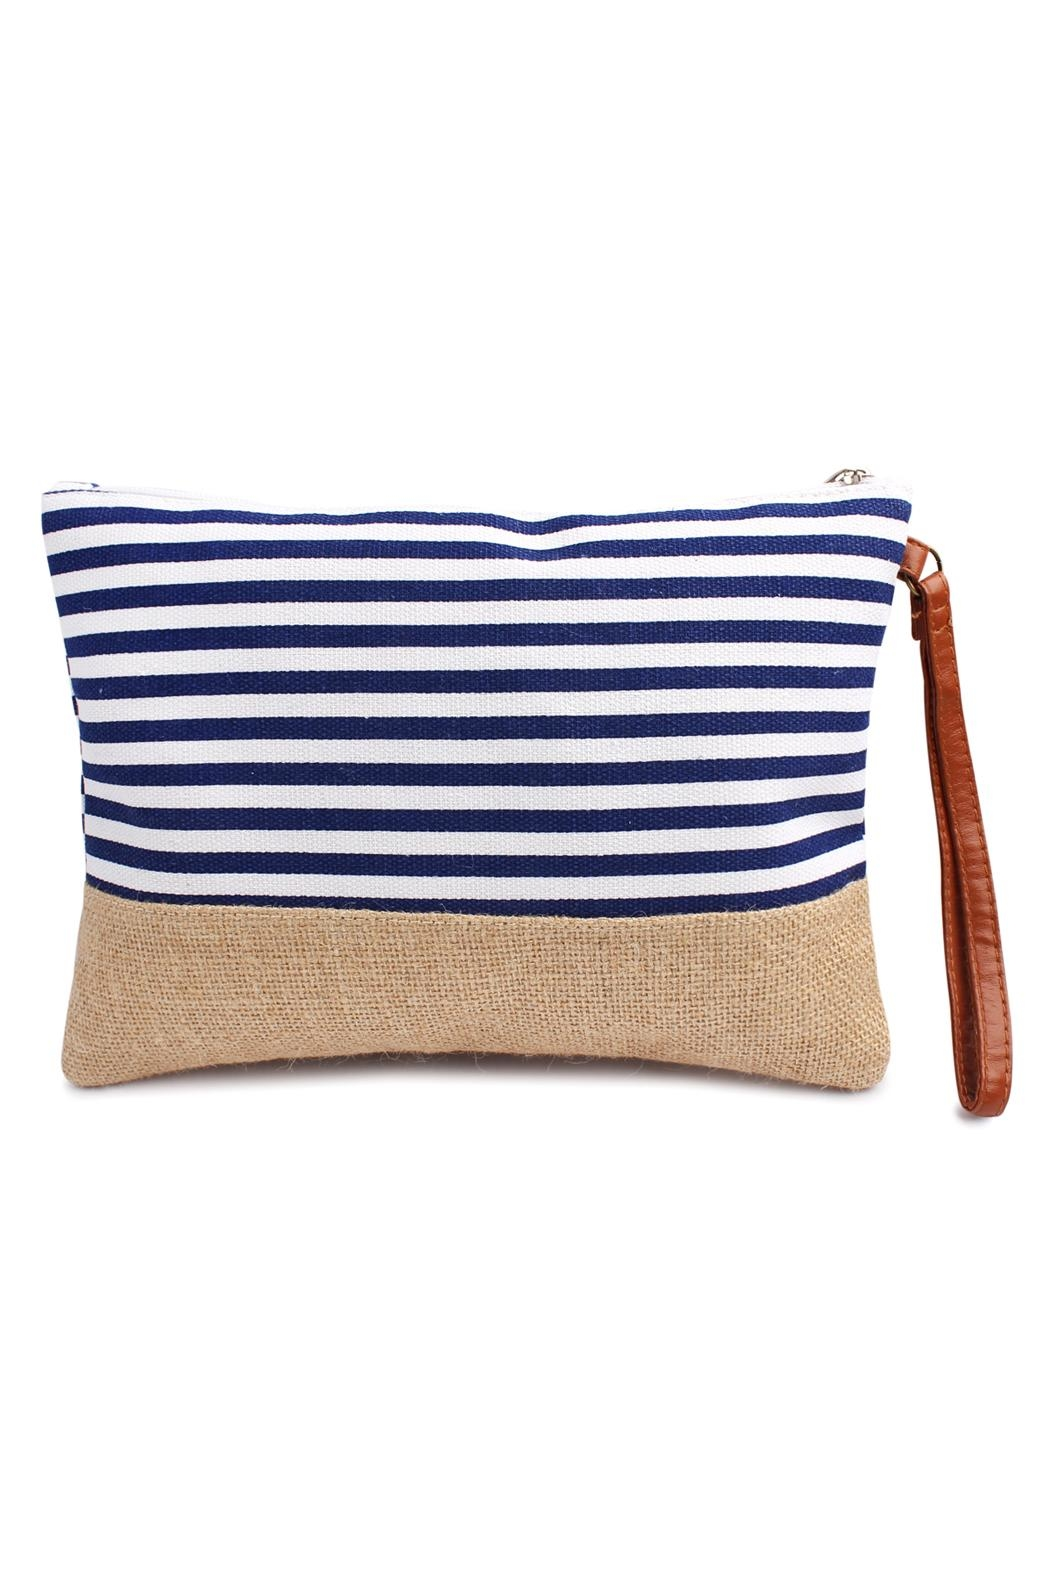 Riah Fashion Striped Wristlet Pouch - Main Image